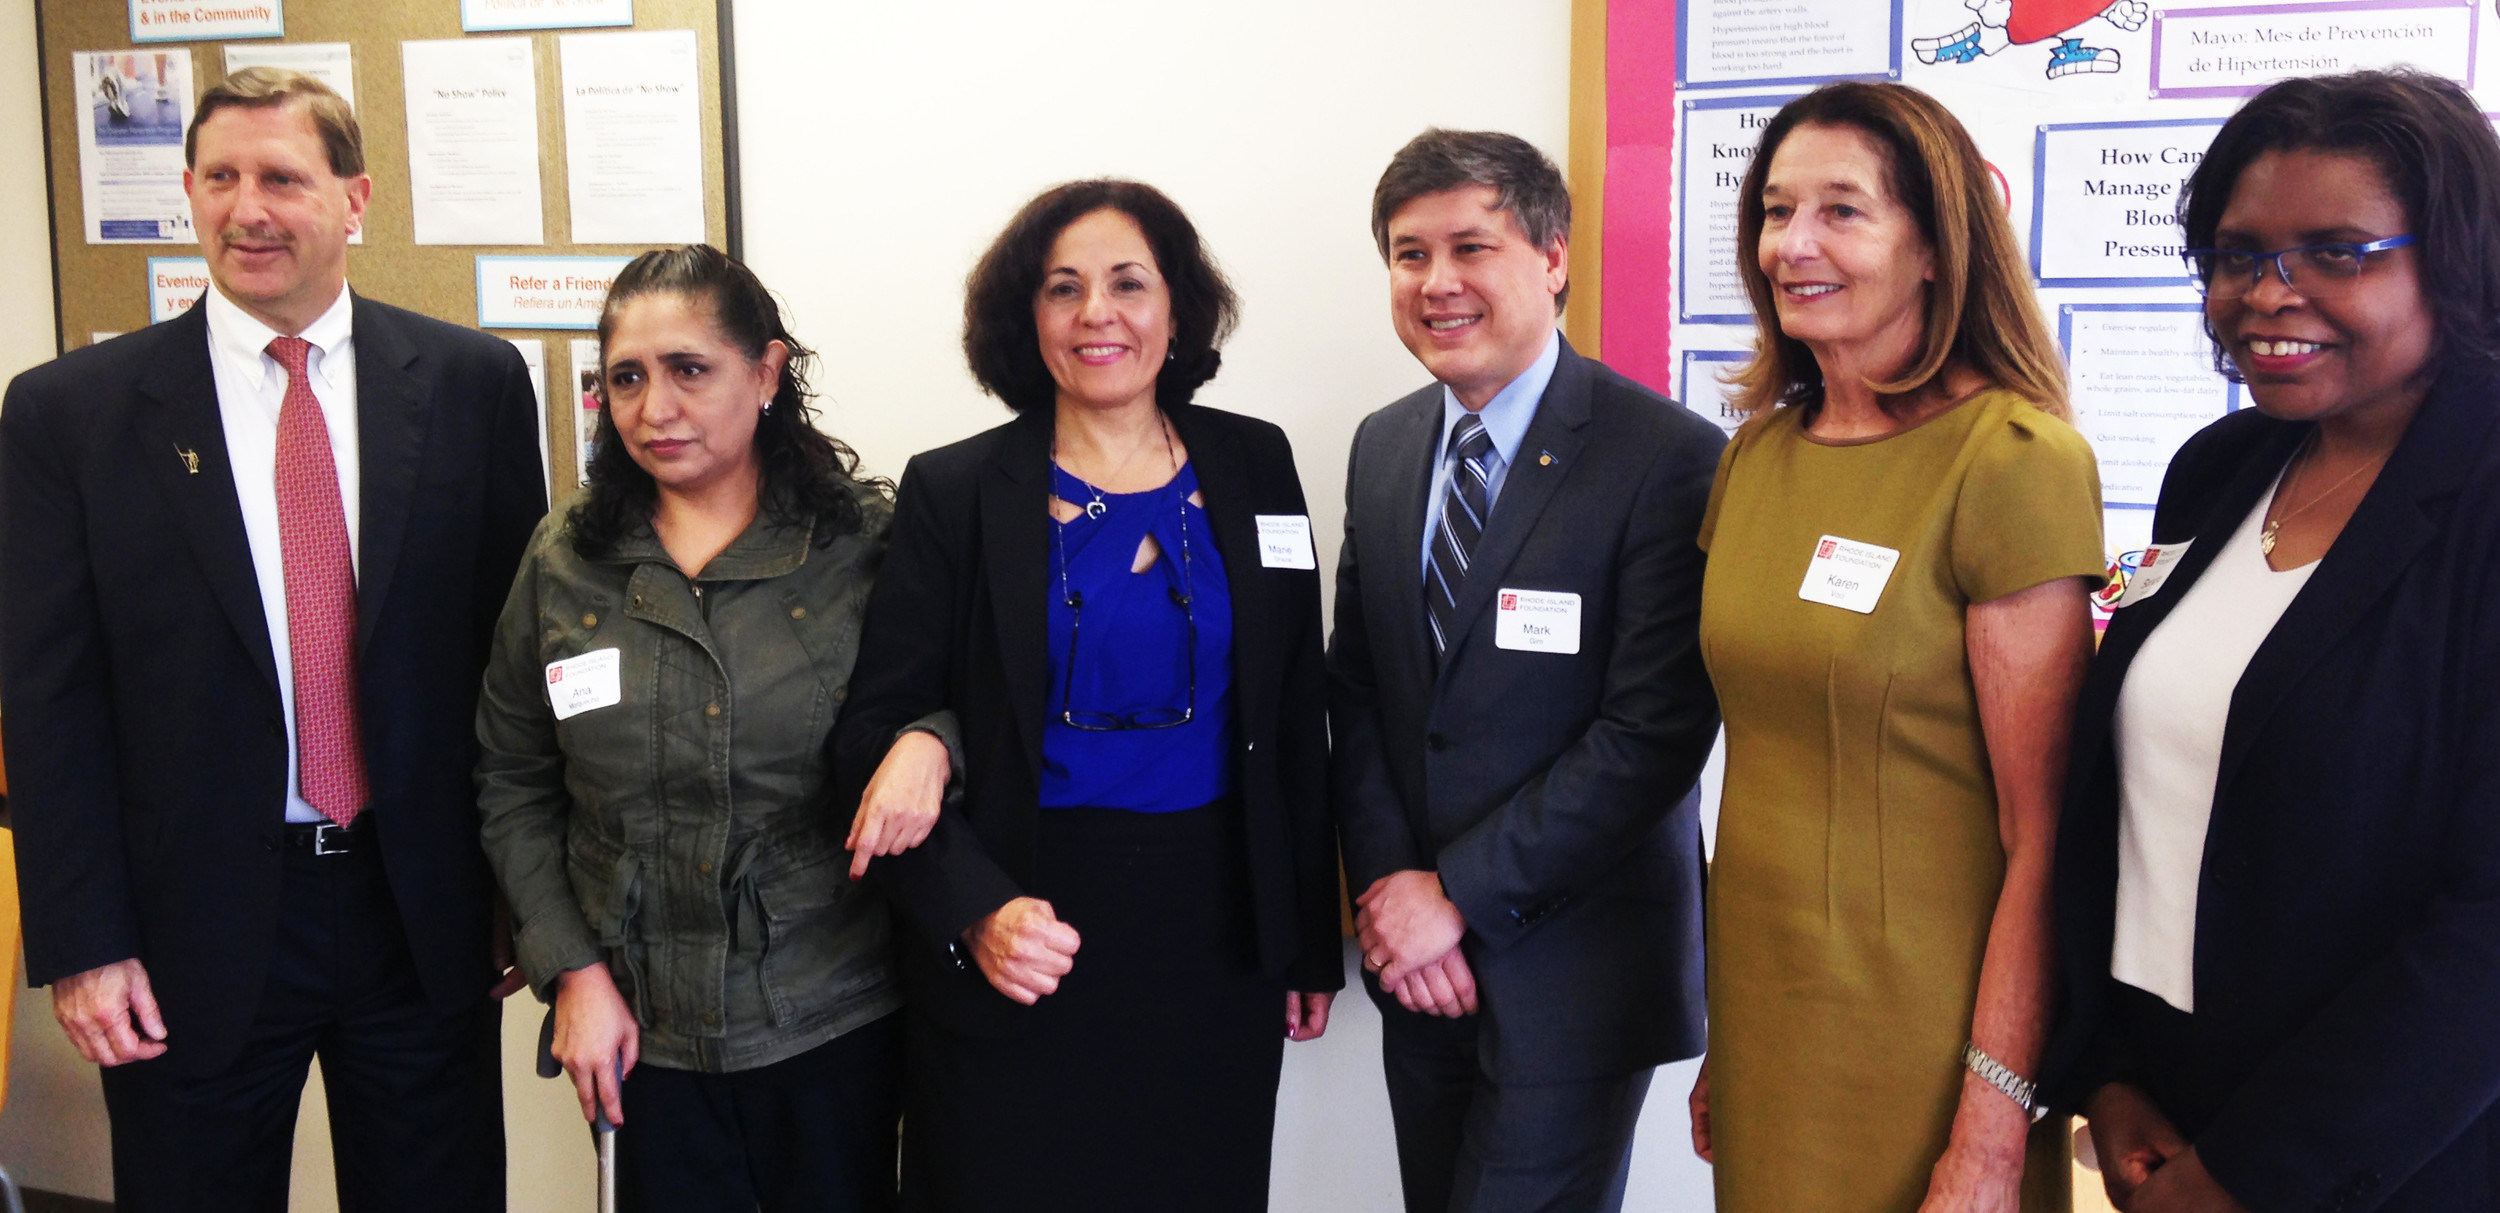 Neil Steinberg, left, president and CEO of The Rhode Island Foundation, Ana Morquecho, a R.I. Free Clinic patient, Marie Ghazal, CEO of the Rhode Island Free Clinic, Mark Gim, chair of the R.I. Free Clinic, Karen Voci, executive director at the Harvard Pilgrim Health Care Foundation, and Sandra Powell, associate director at the R.I. Department of Health, at the May 2 news conference, at which the Rhode Island Foundation announced more than $270,000 in grants.